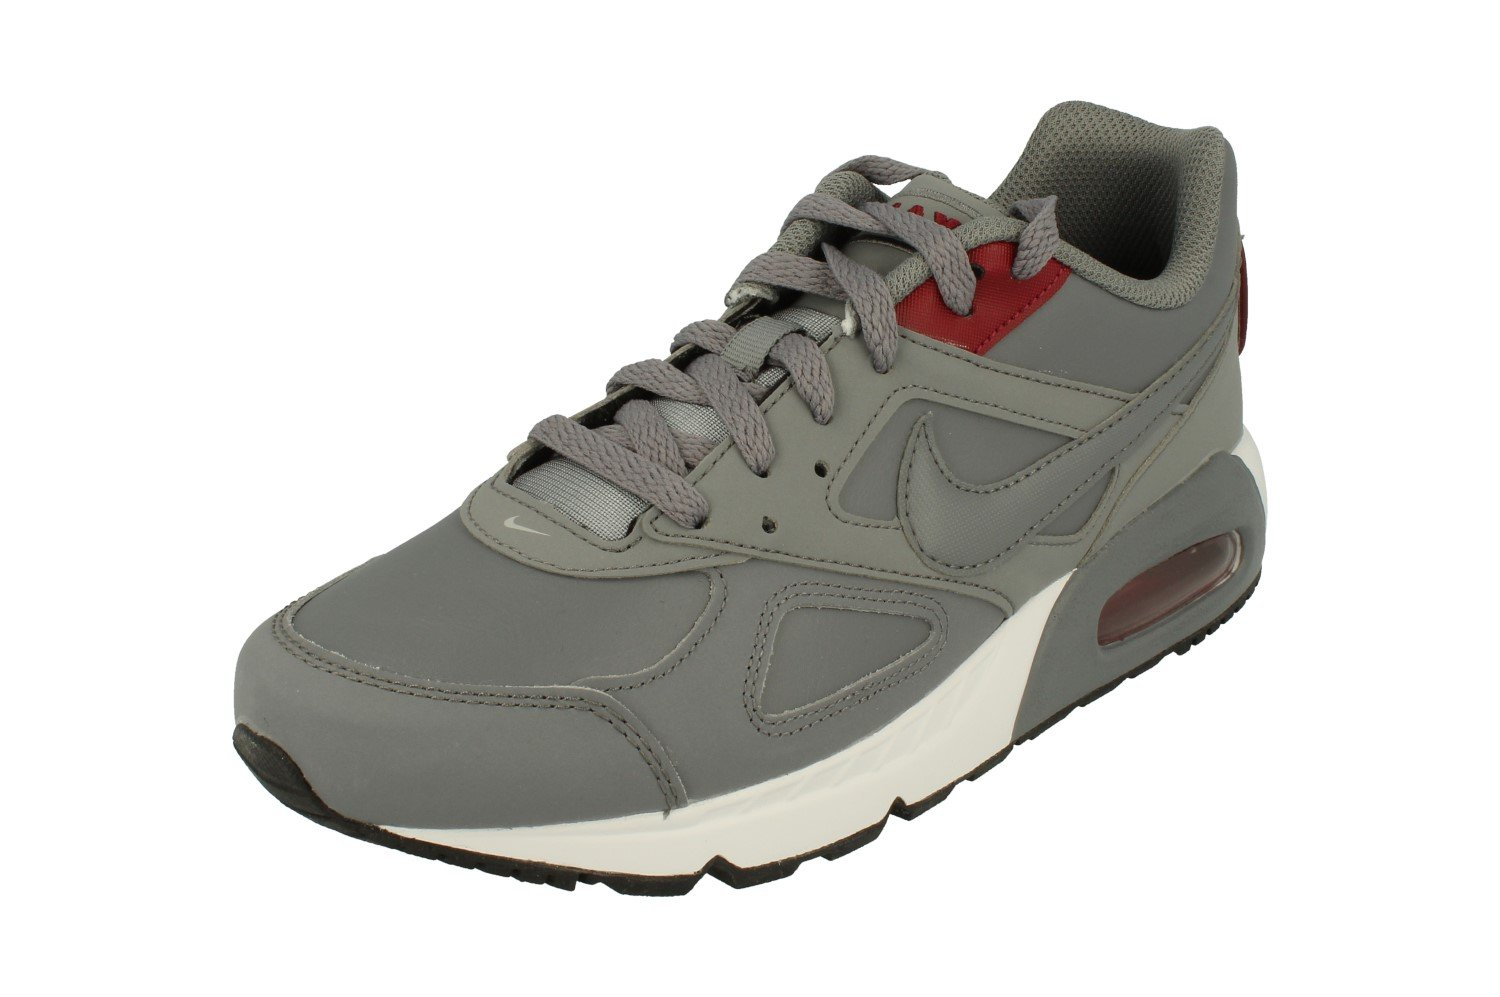 NIKE Air Max IVO Mens Running Shoes B00968ZPP2 7.5 D(M) US|Cool Grey Team Red 006